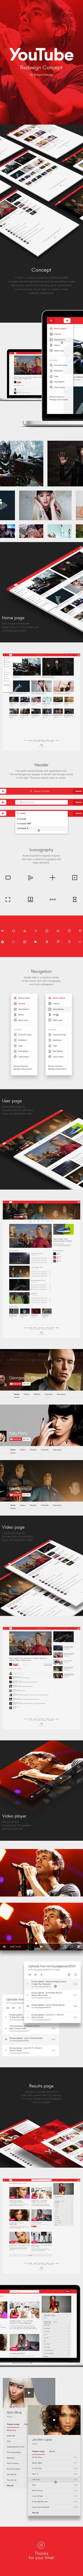 YouTube Redesign Con